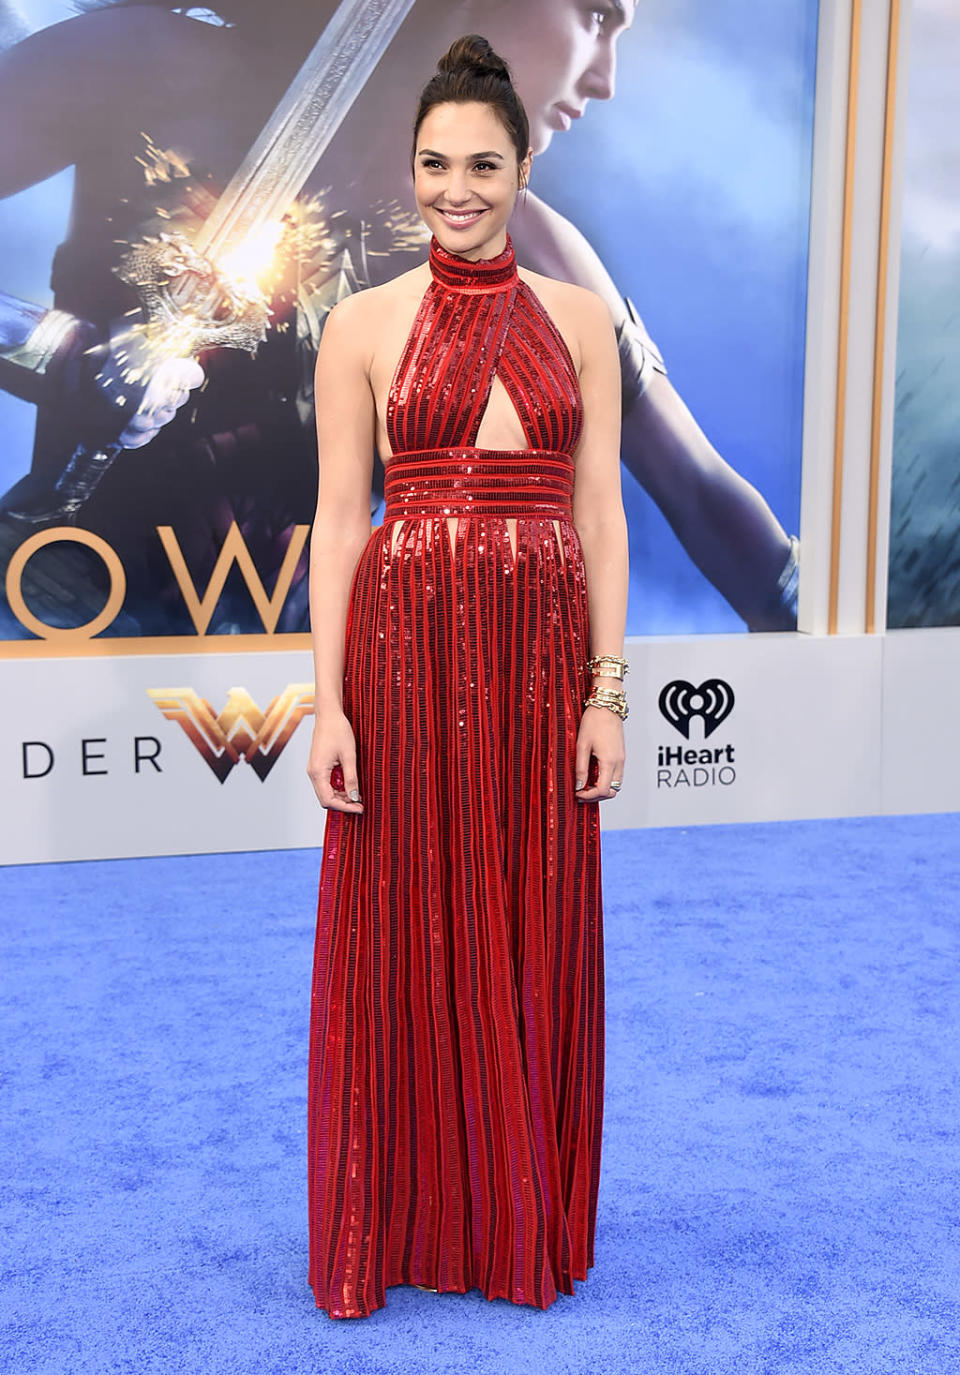 """<p>The stylish Gadot explained at <i>Wonder Woman</i>'s Hollywood premiere, where she went glam in a Gucci number and $50 flats from Aldo, that she'd given up her high heels for a very simple reason. """"<a rel=""""nofollow noopener"""" href=""""http://people.com/style/gal-gadot-wears-flats-wonder-woman-press-tour/"""" target=""""_blank"""" data-ylk=""""slk:It's more comfortable"""" class=""""link rapid-noclick-resp"""">It's more comfortable</a>. That's it!"""" she told <i>People</i>. (Photo: Jordan Strauss/Invision/AP) </p>"""